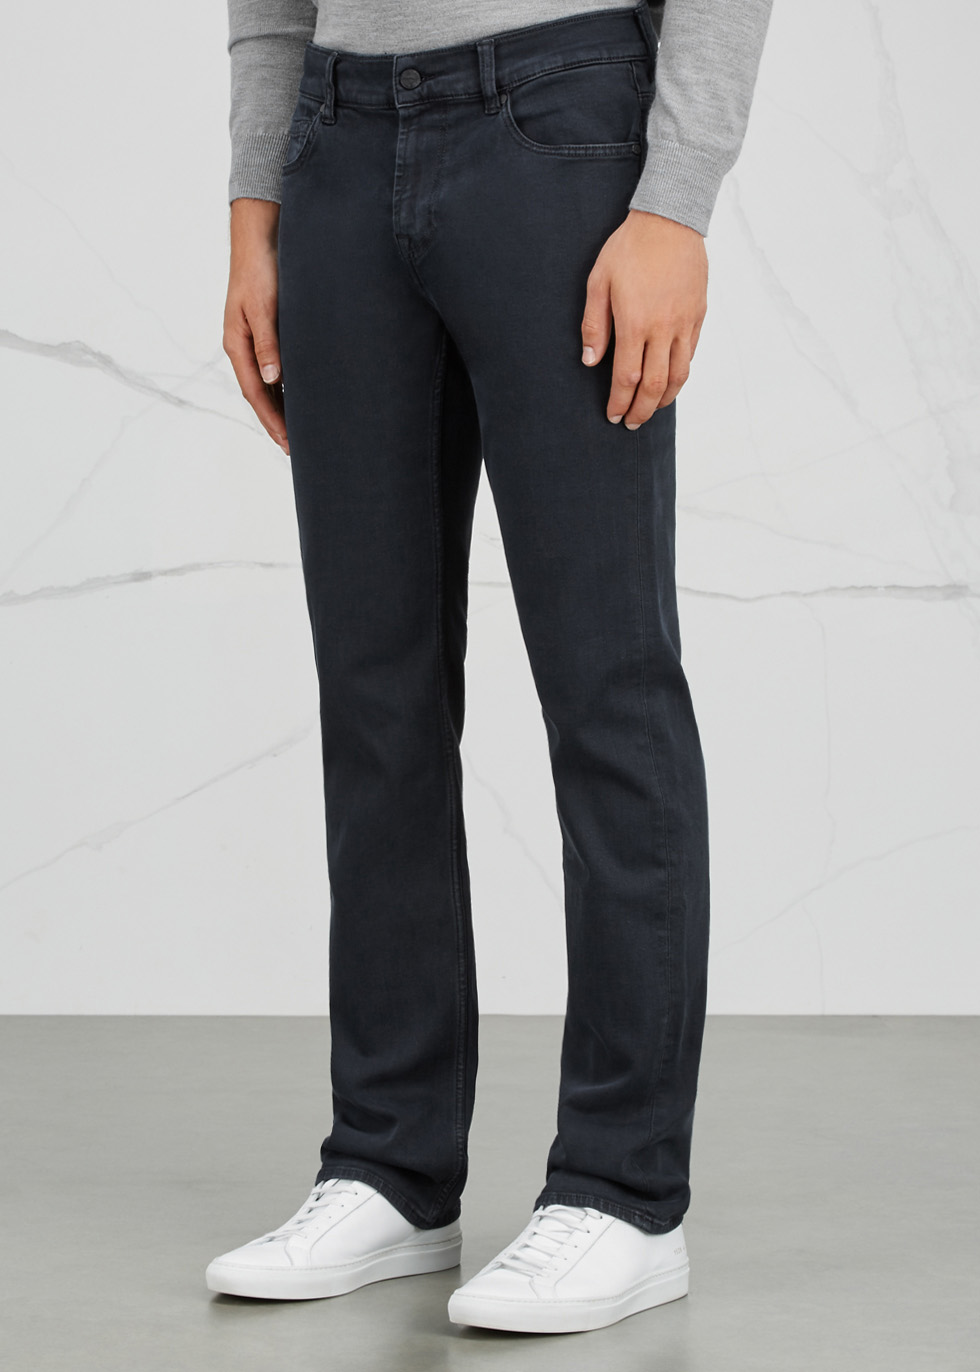 Standard Luxe Performance straight leg jeans - 7 For All Mankind